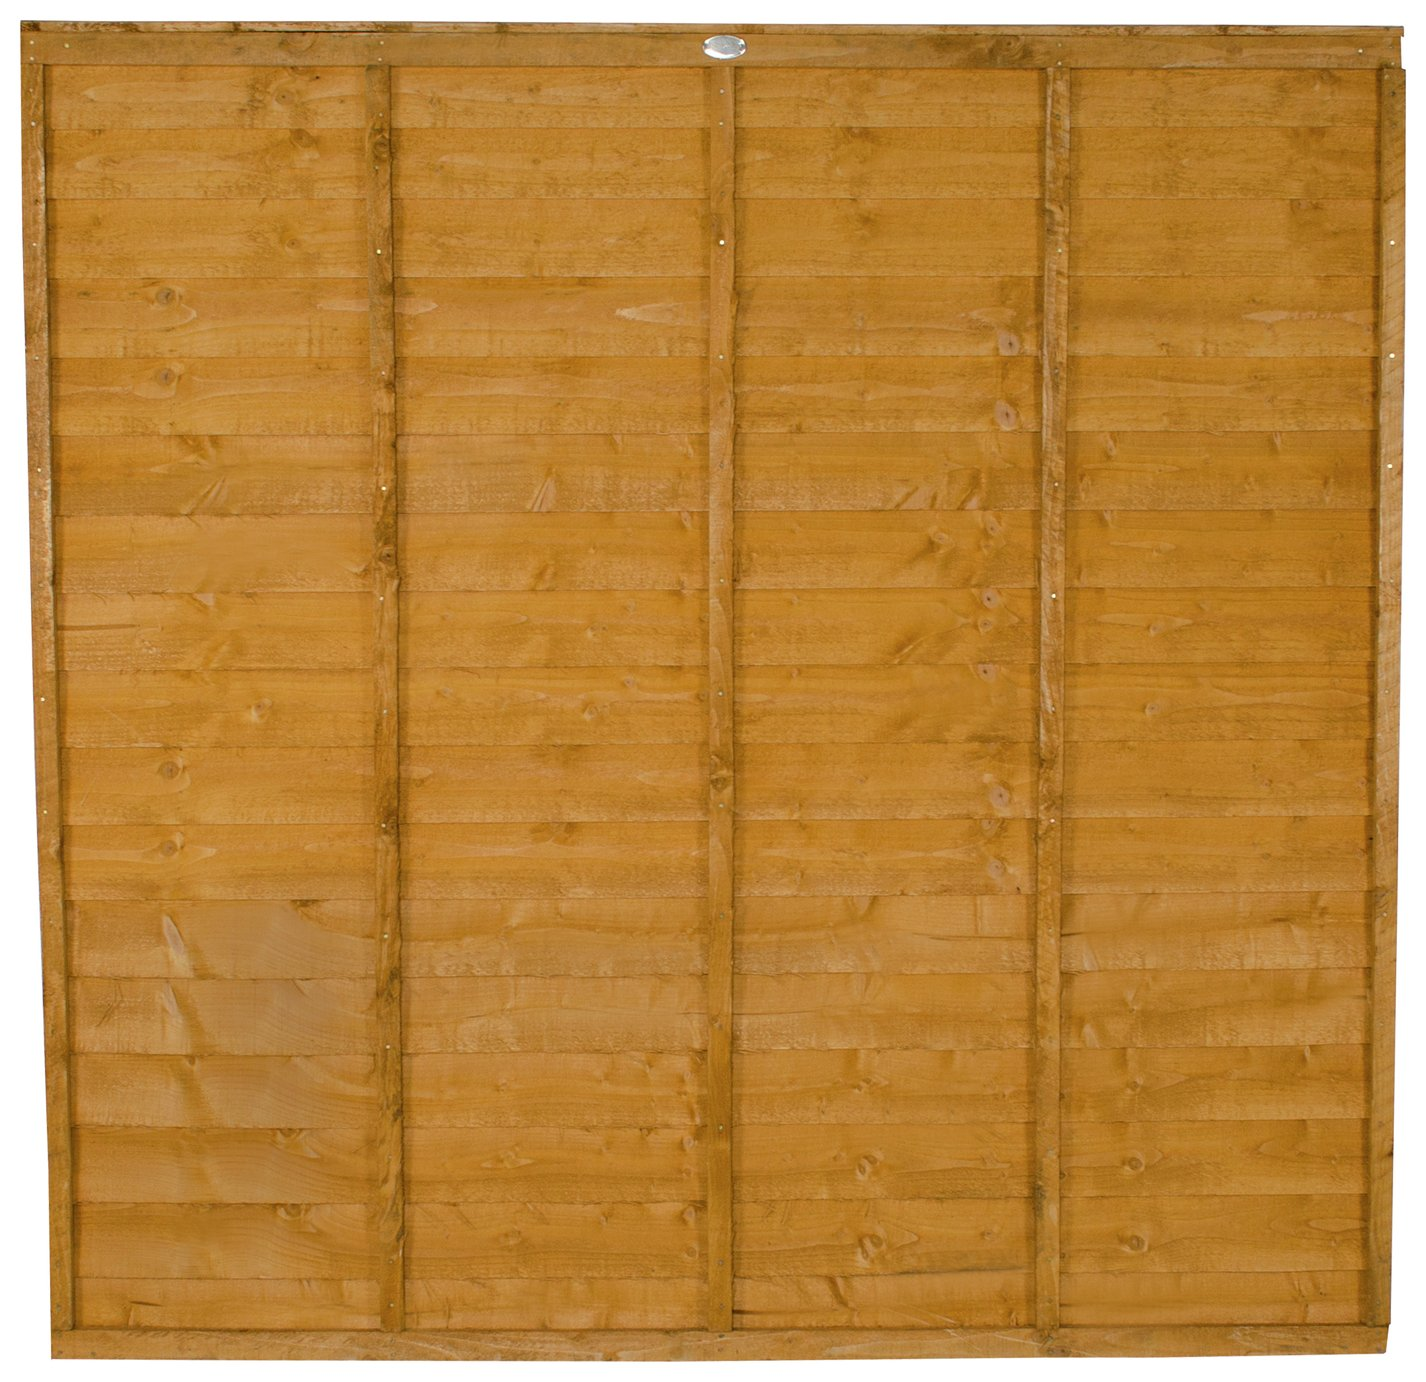 Forest 5ft (1.52m) Premier Lap Fence Panel - Pack of 3